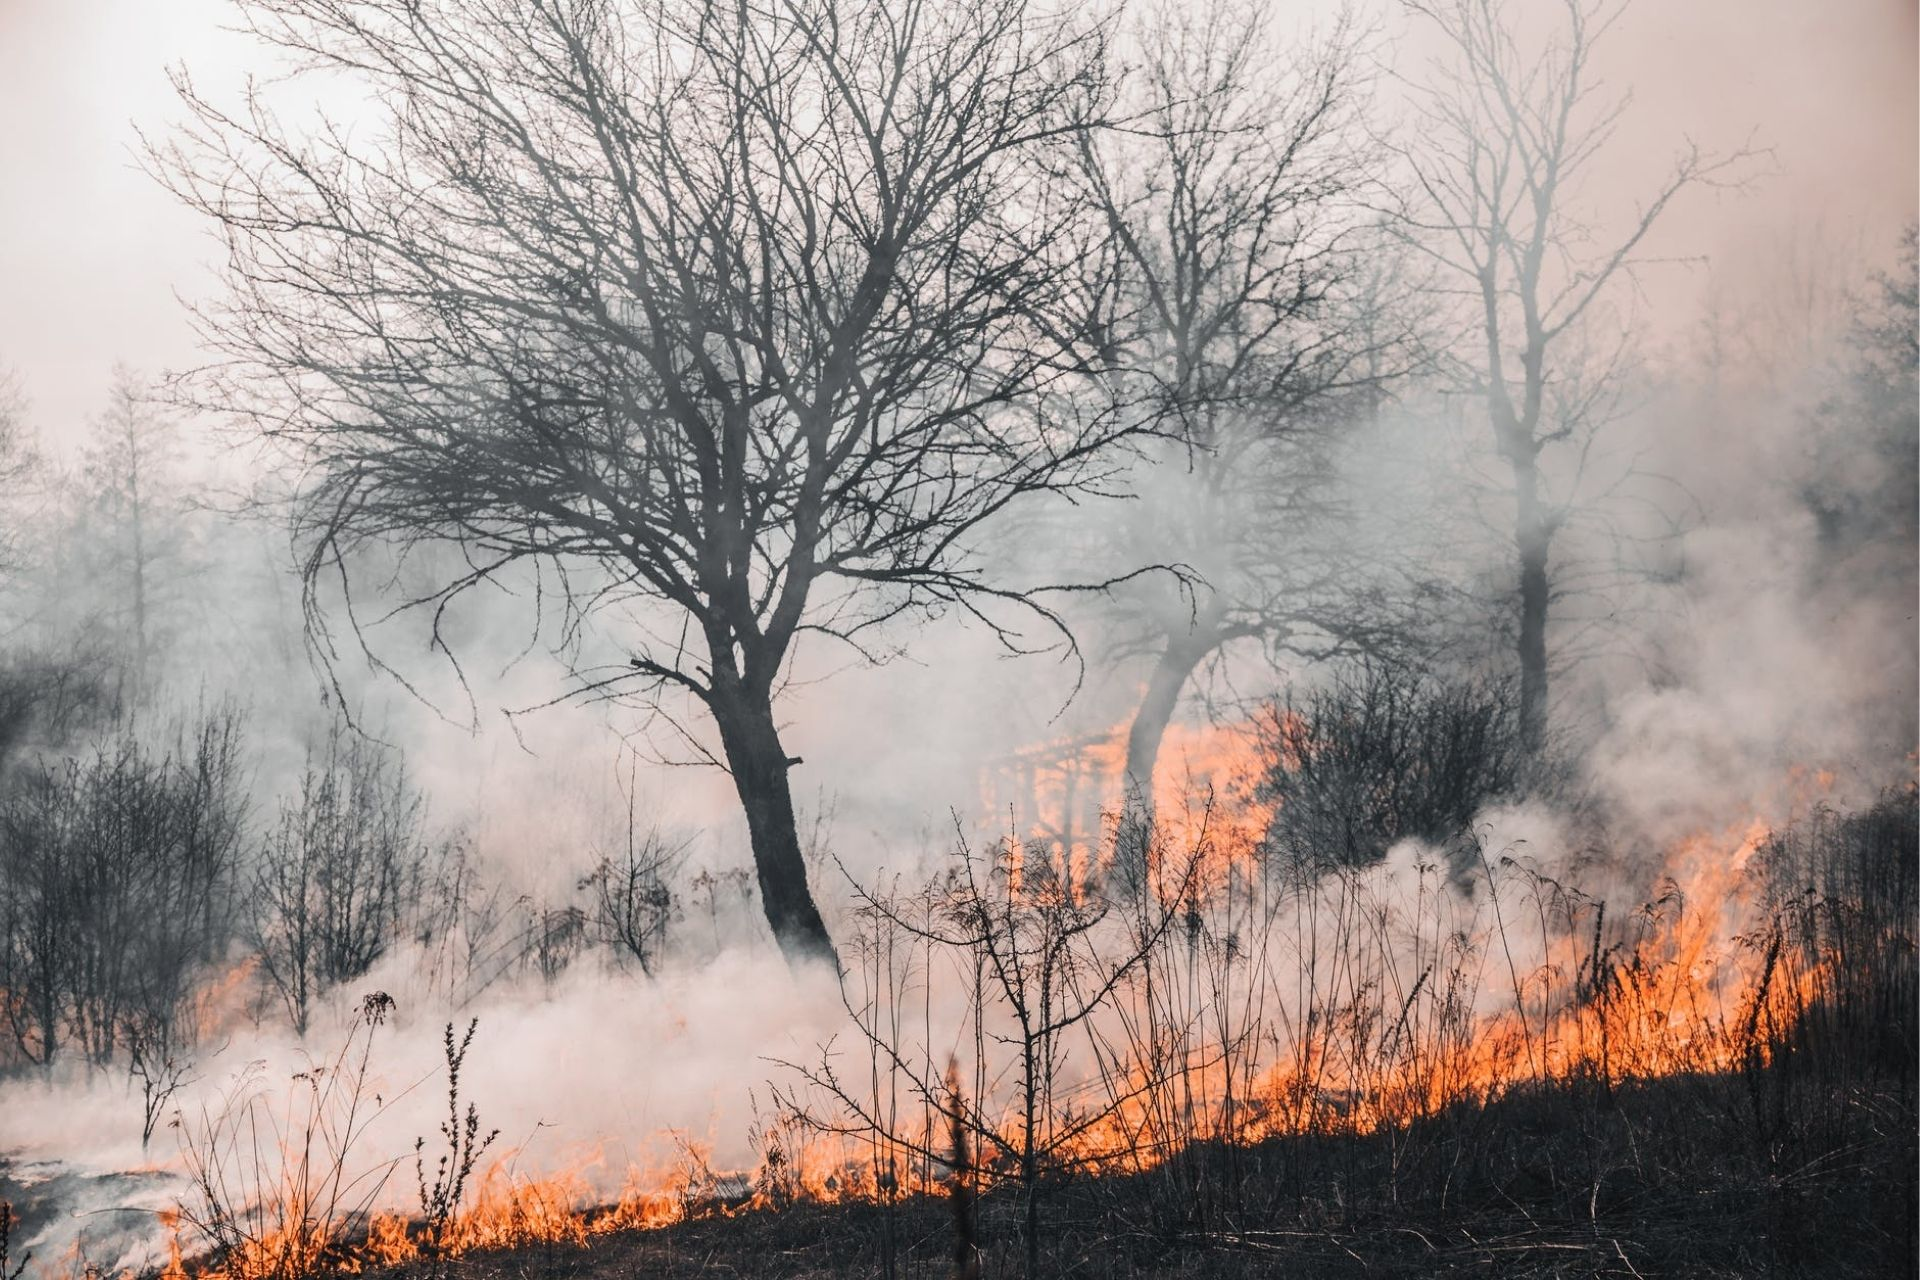 how do forest firest affect climate change